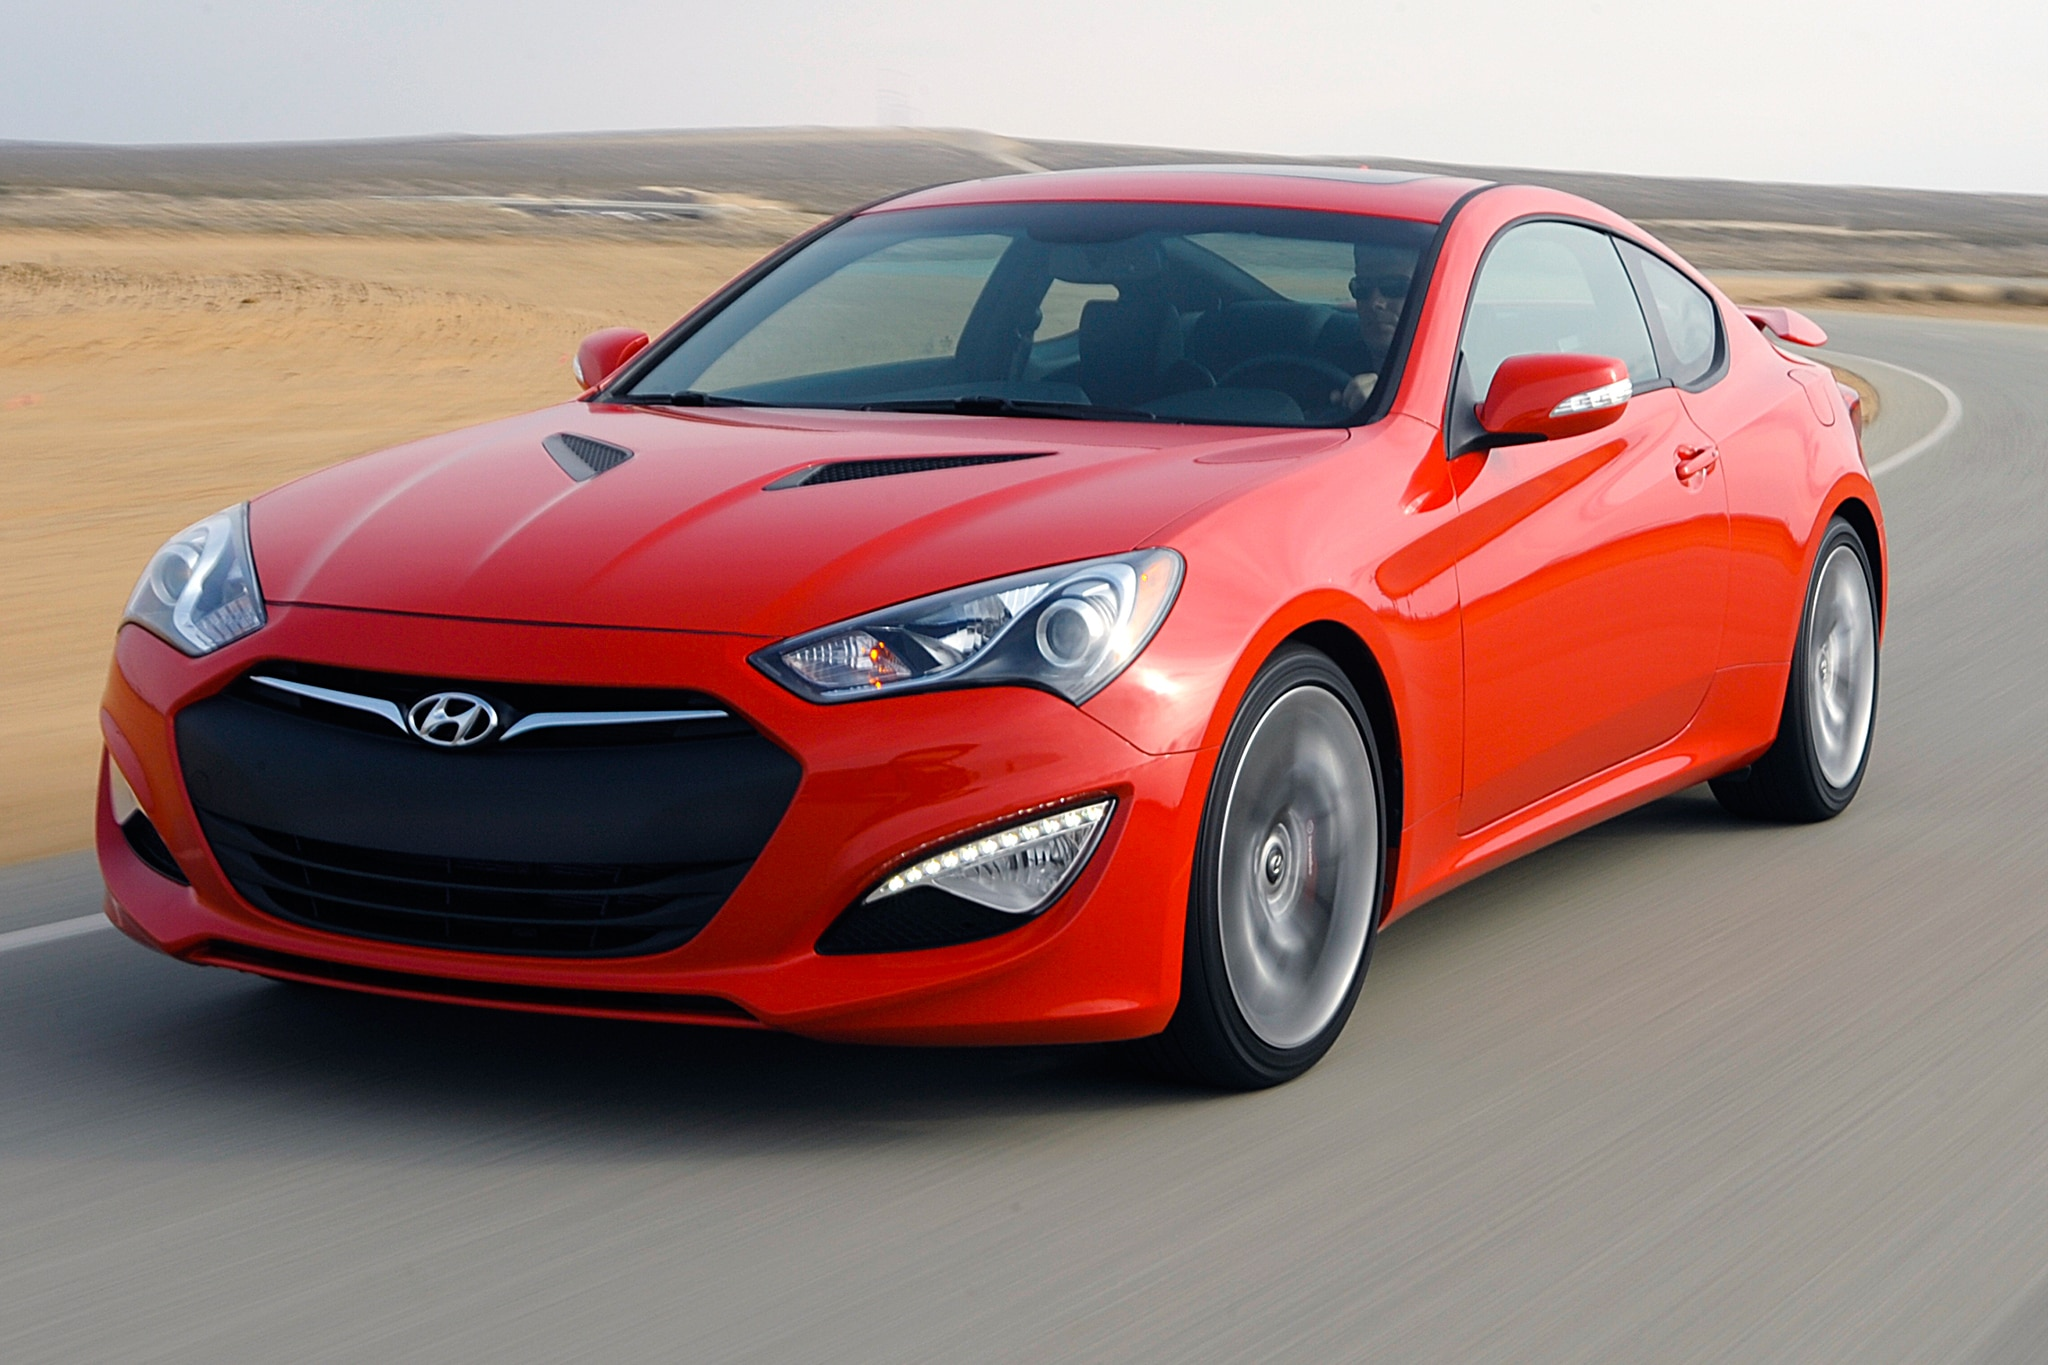 2014 hyundai genesis coupe priced at 27 245 automobile magazine. Black Bedroom Furniture Sets. Home Design Ideas